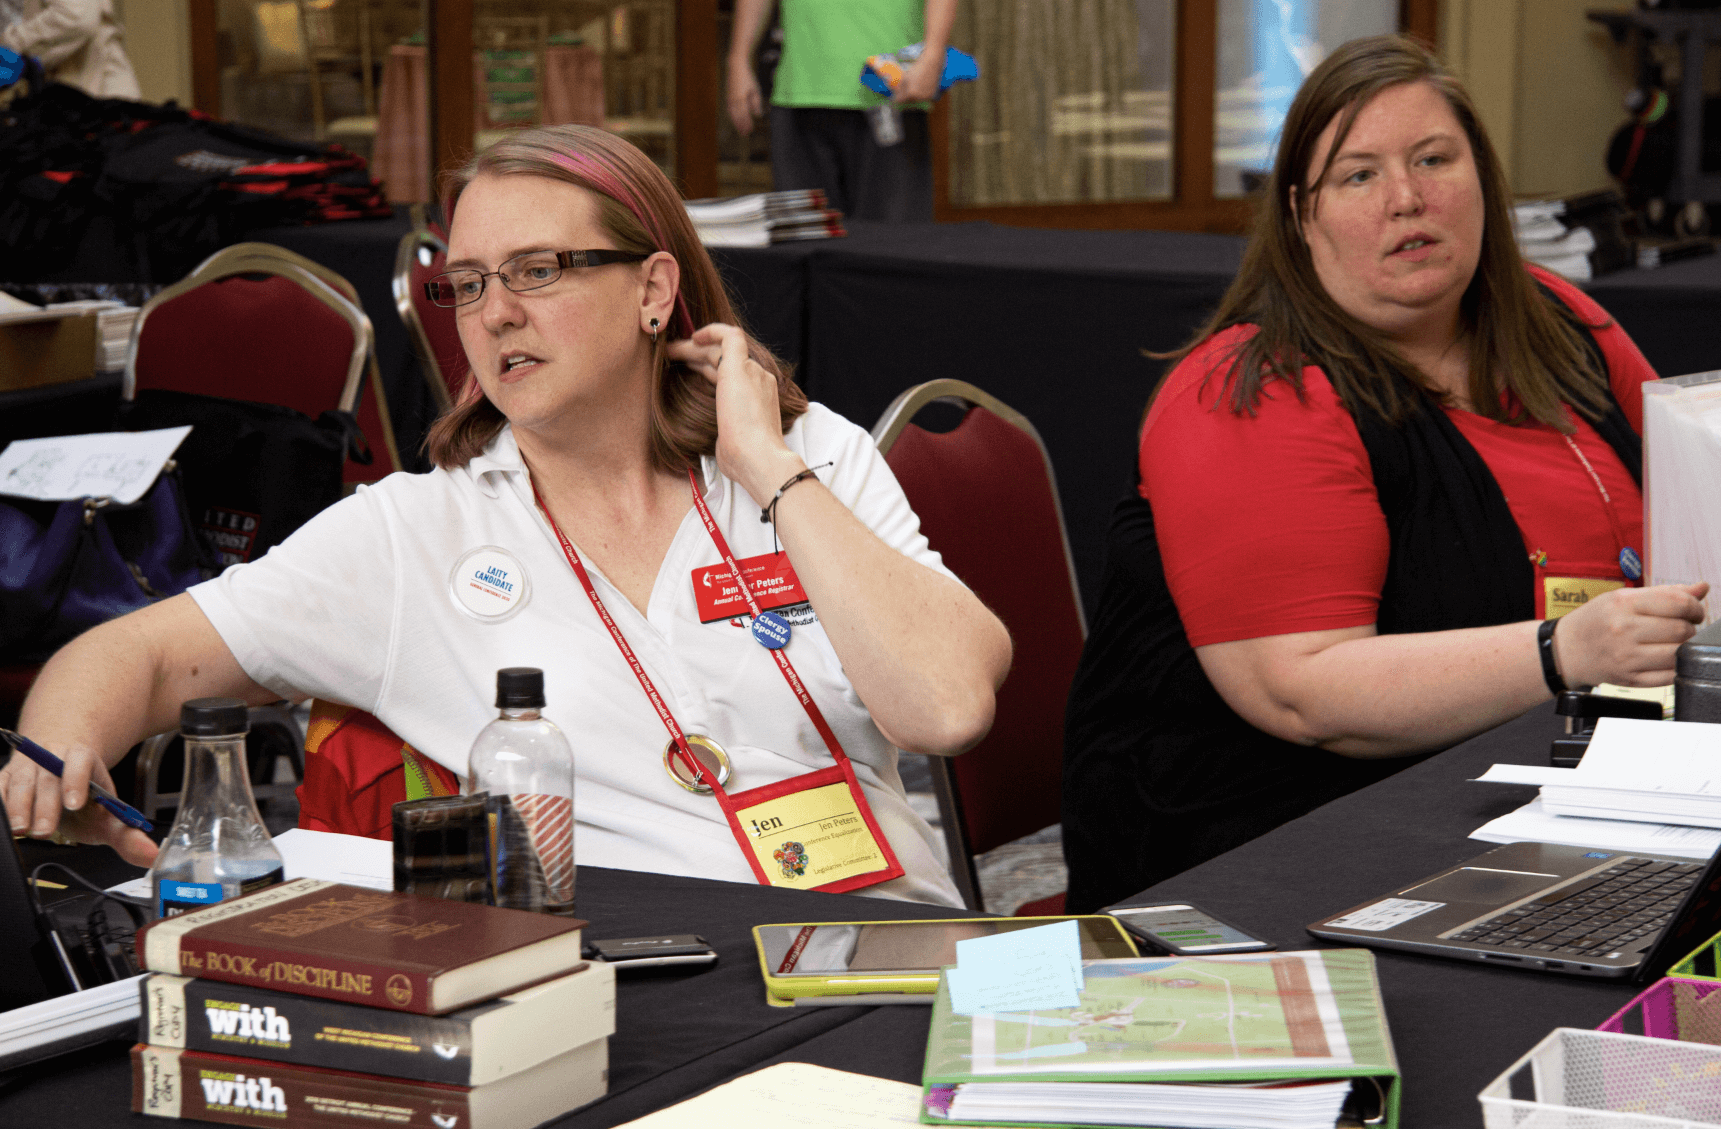 Jen Peters at the Registration Desk at AC 2019